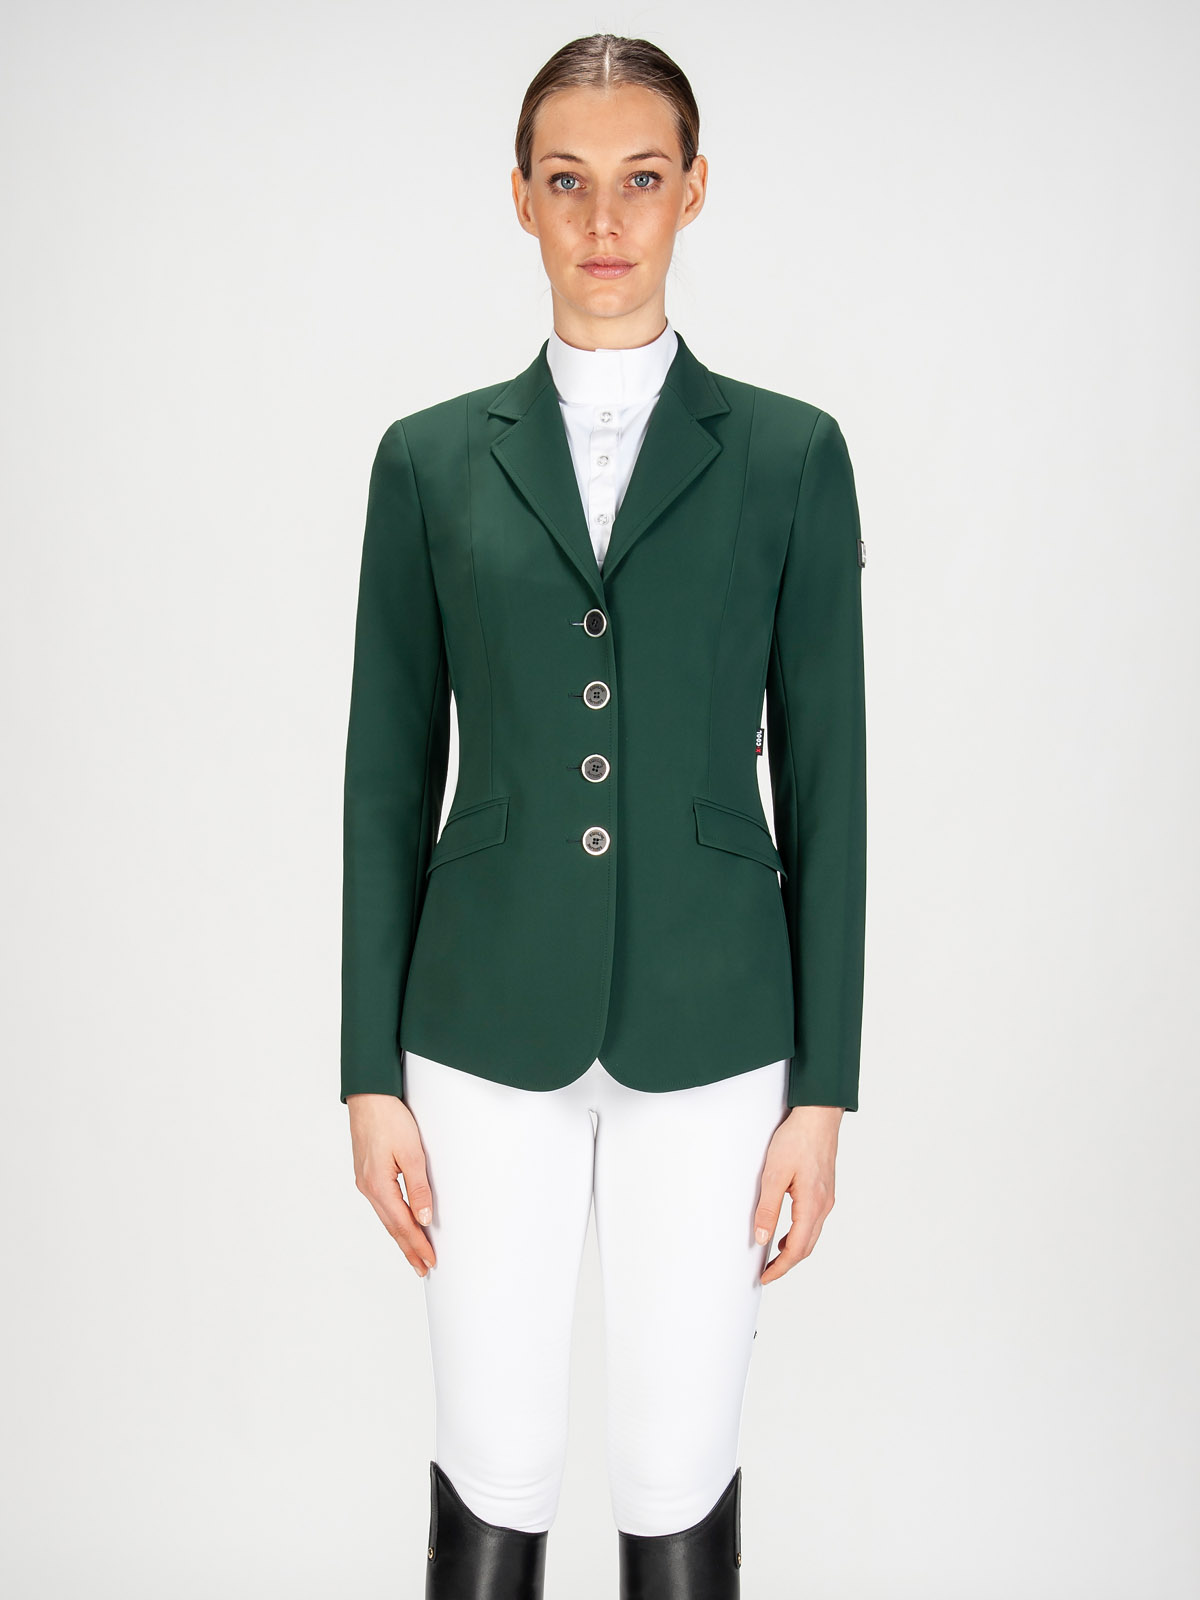 Gait women's show coat in X-Cool Evo performance fabric green